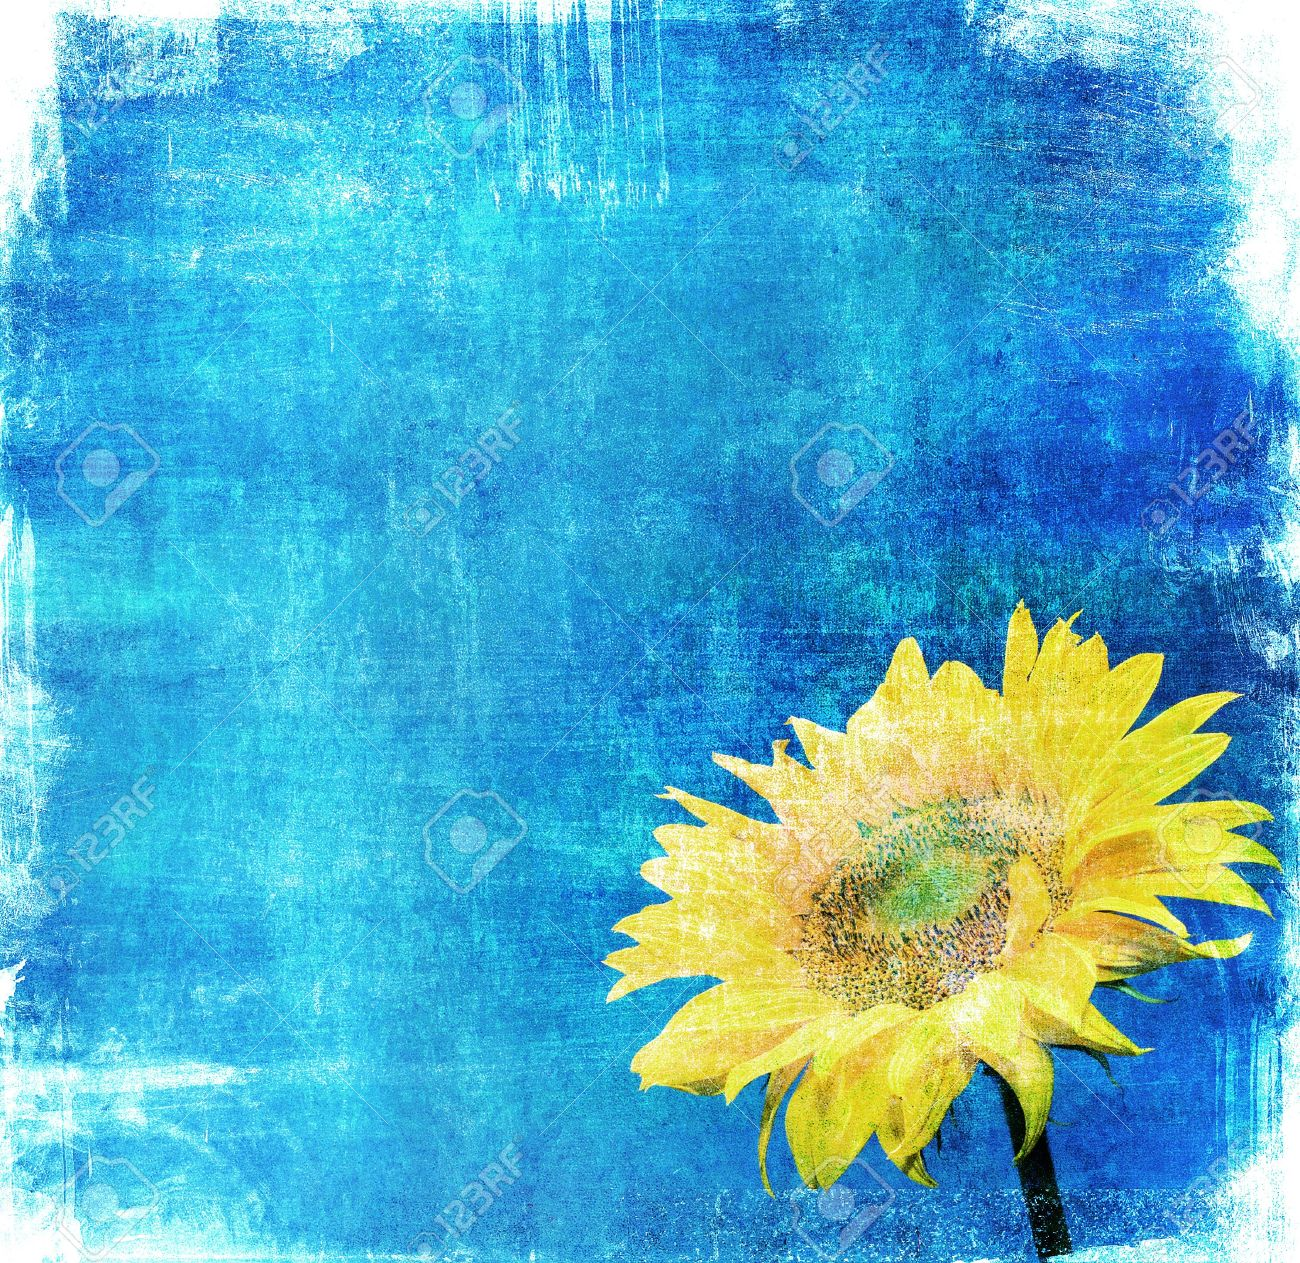 Vintage Image Of Sunflower On Grunge Background Stock Photo Picture